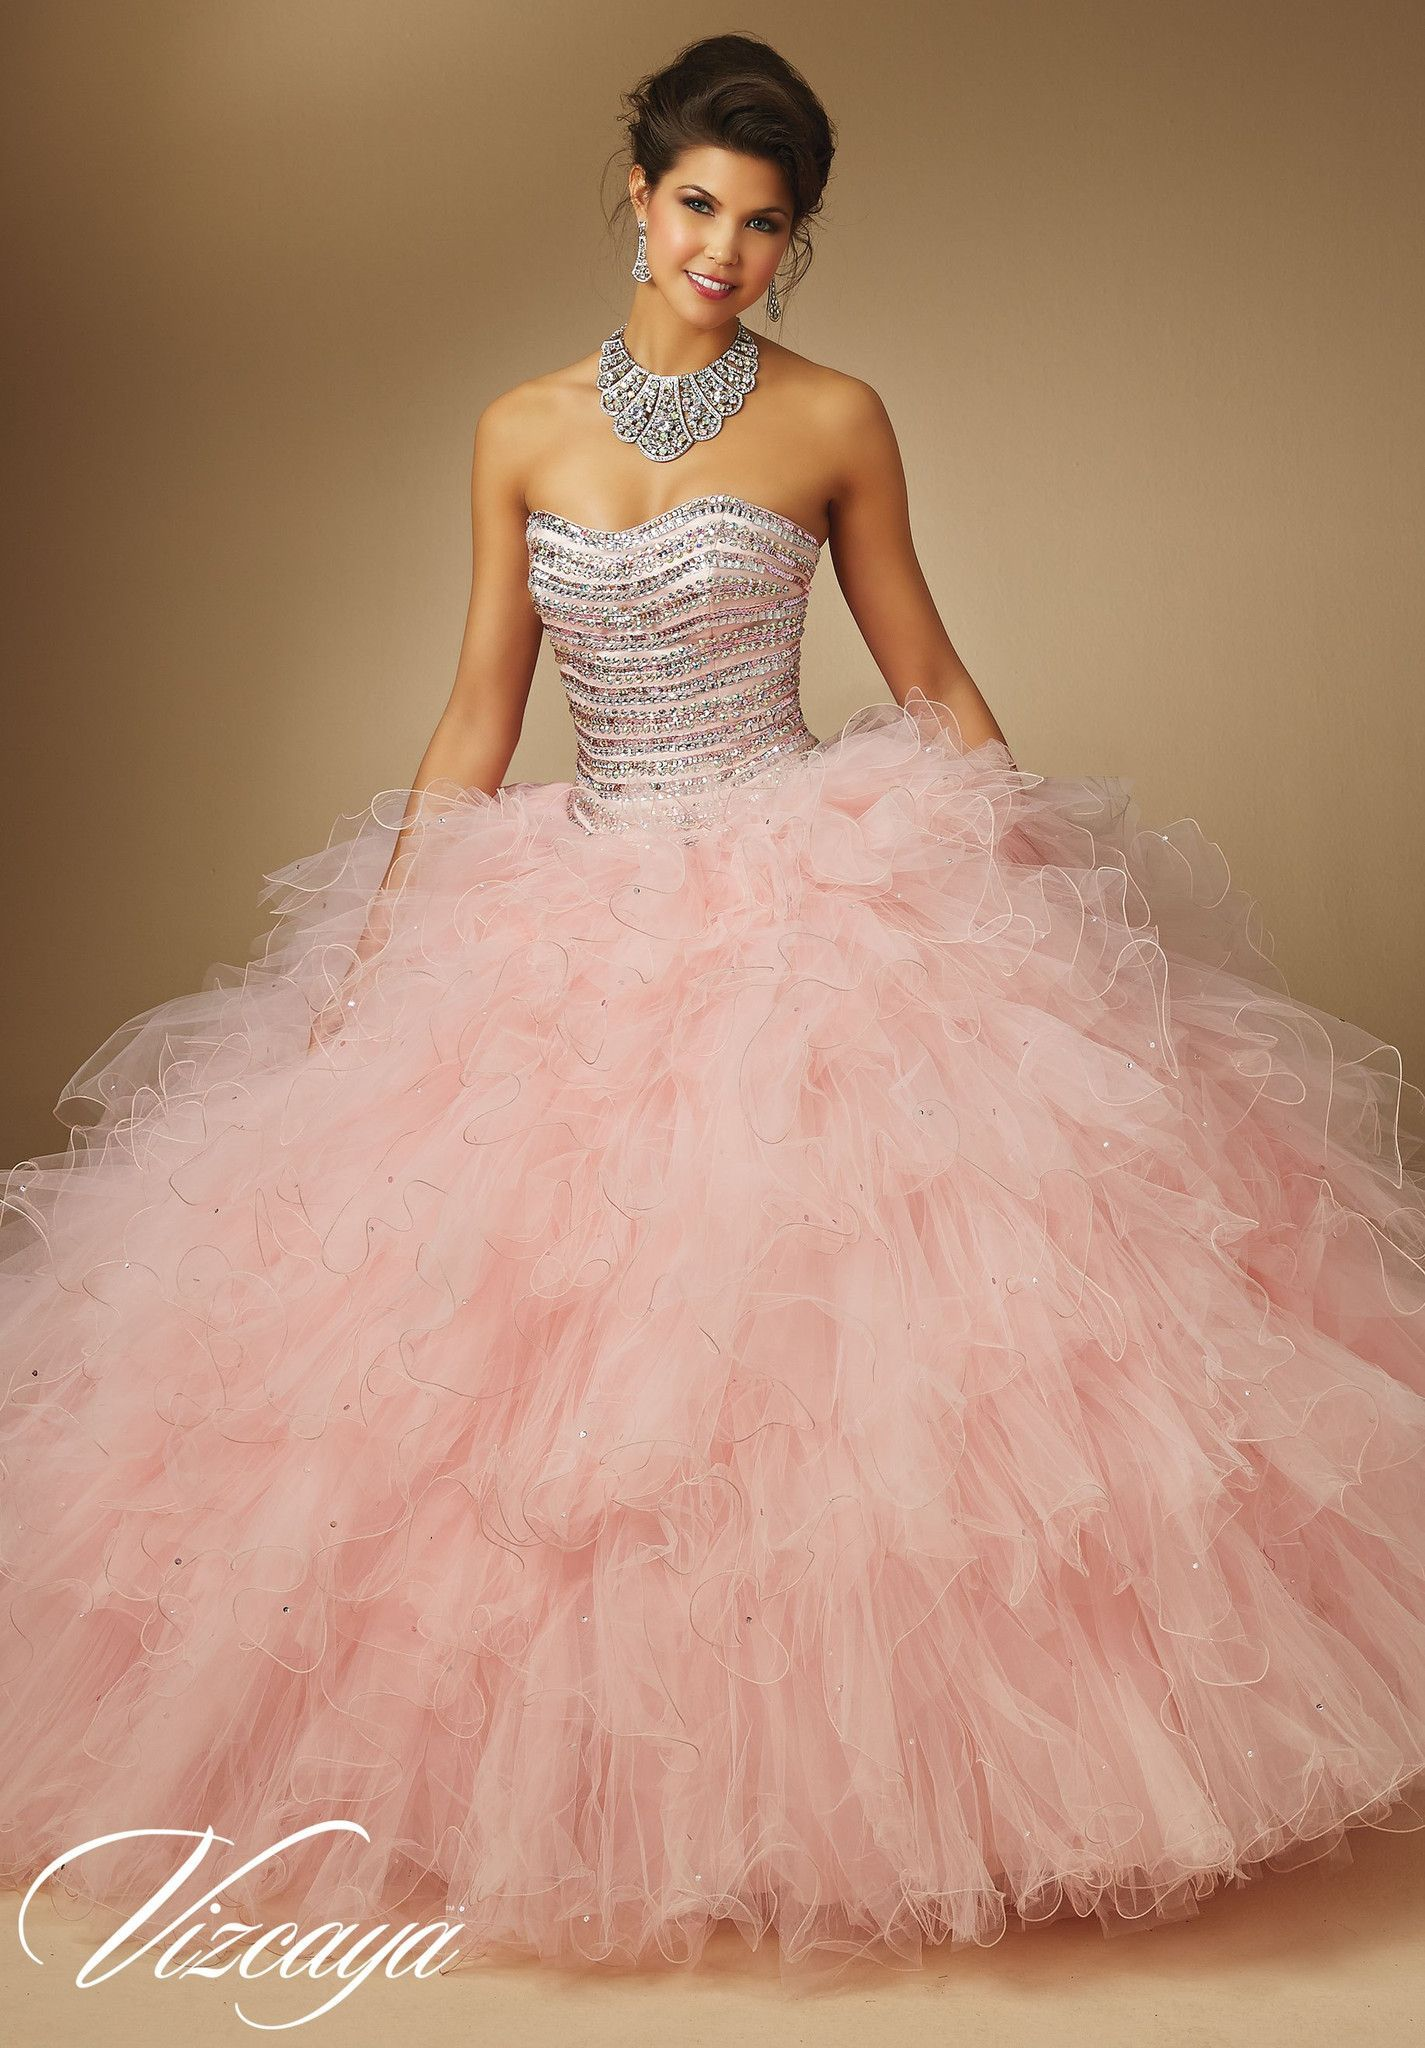 Mori Lee Quinceanera Dress 89046 | Vestiditos, 15 vestidos y ...